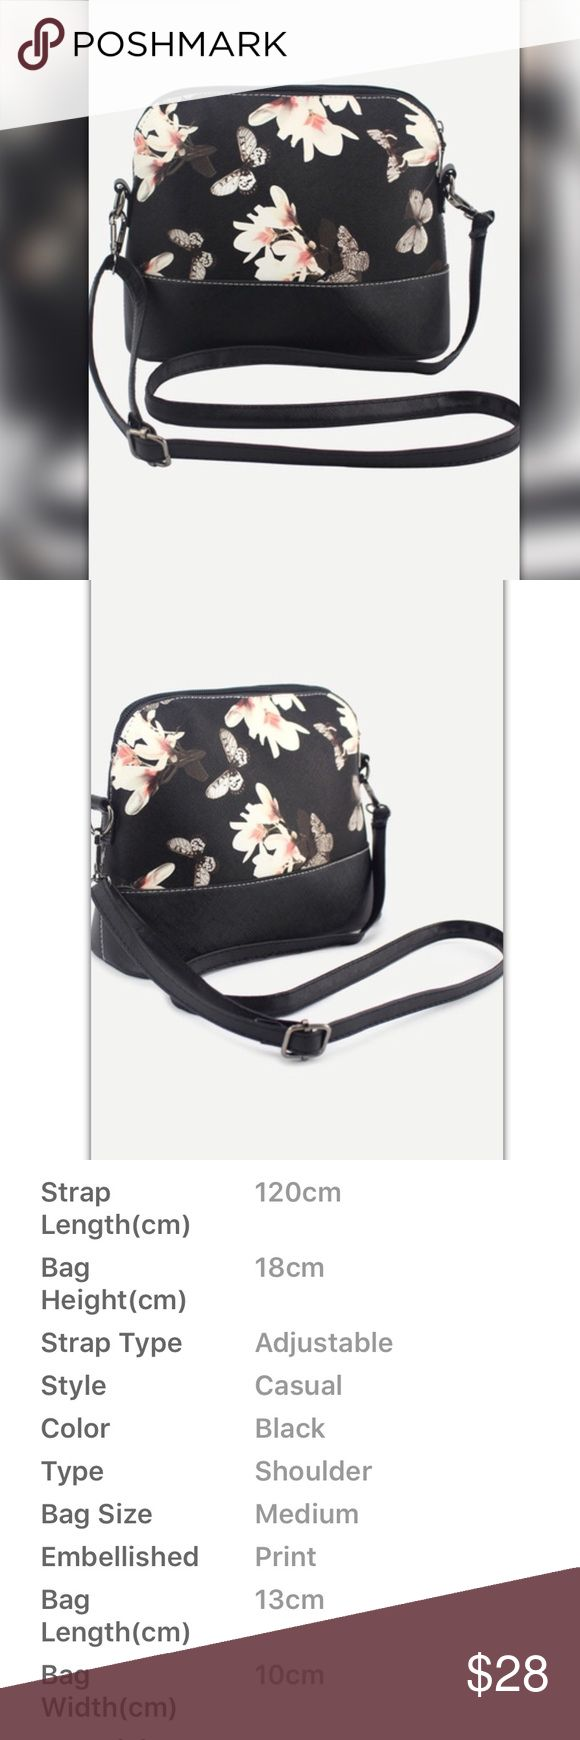 COMING SOON!  Butterfly and Floral Crossbody Bag Adjustable shoulder bag medium sized Bags